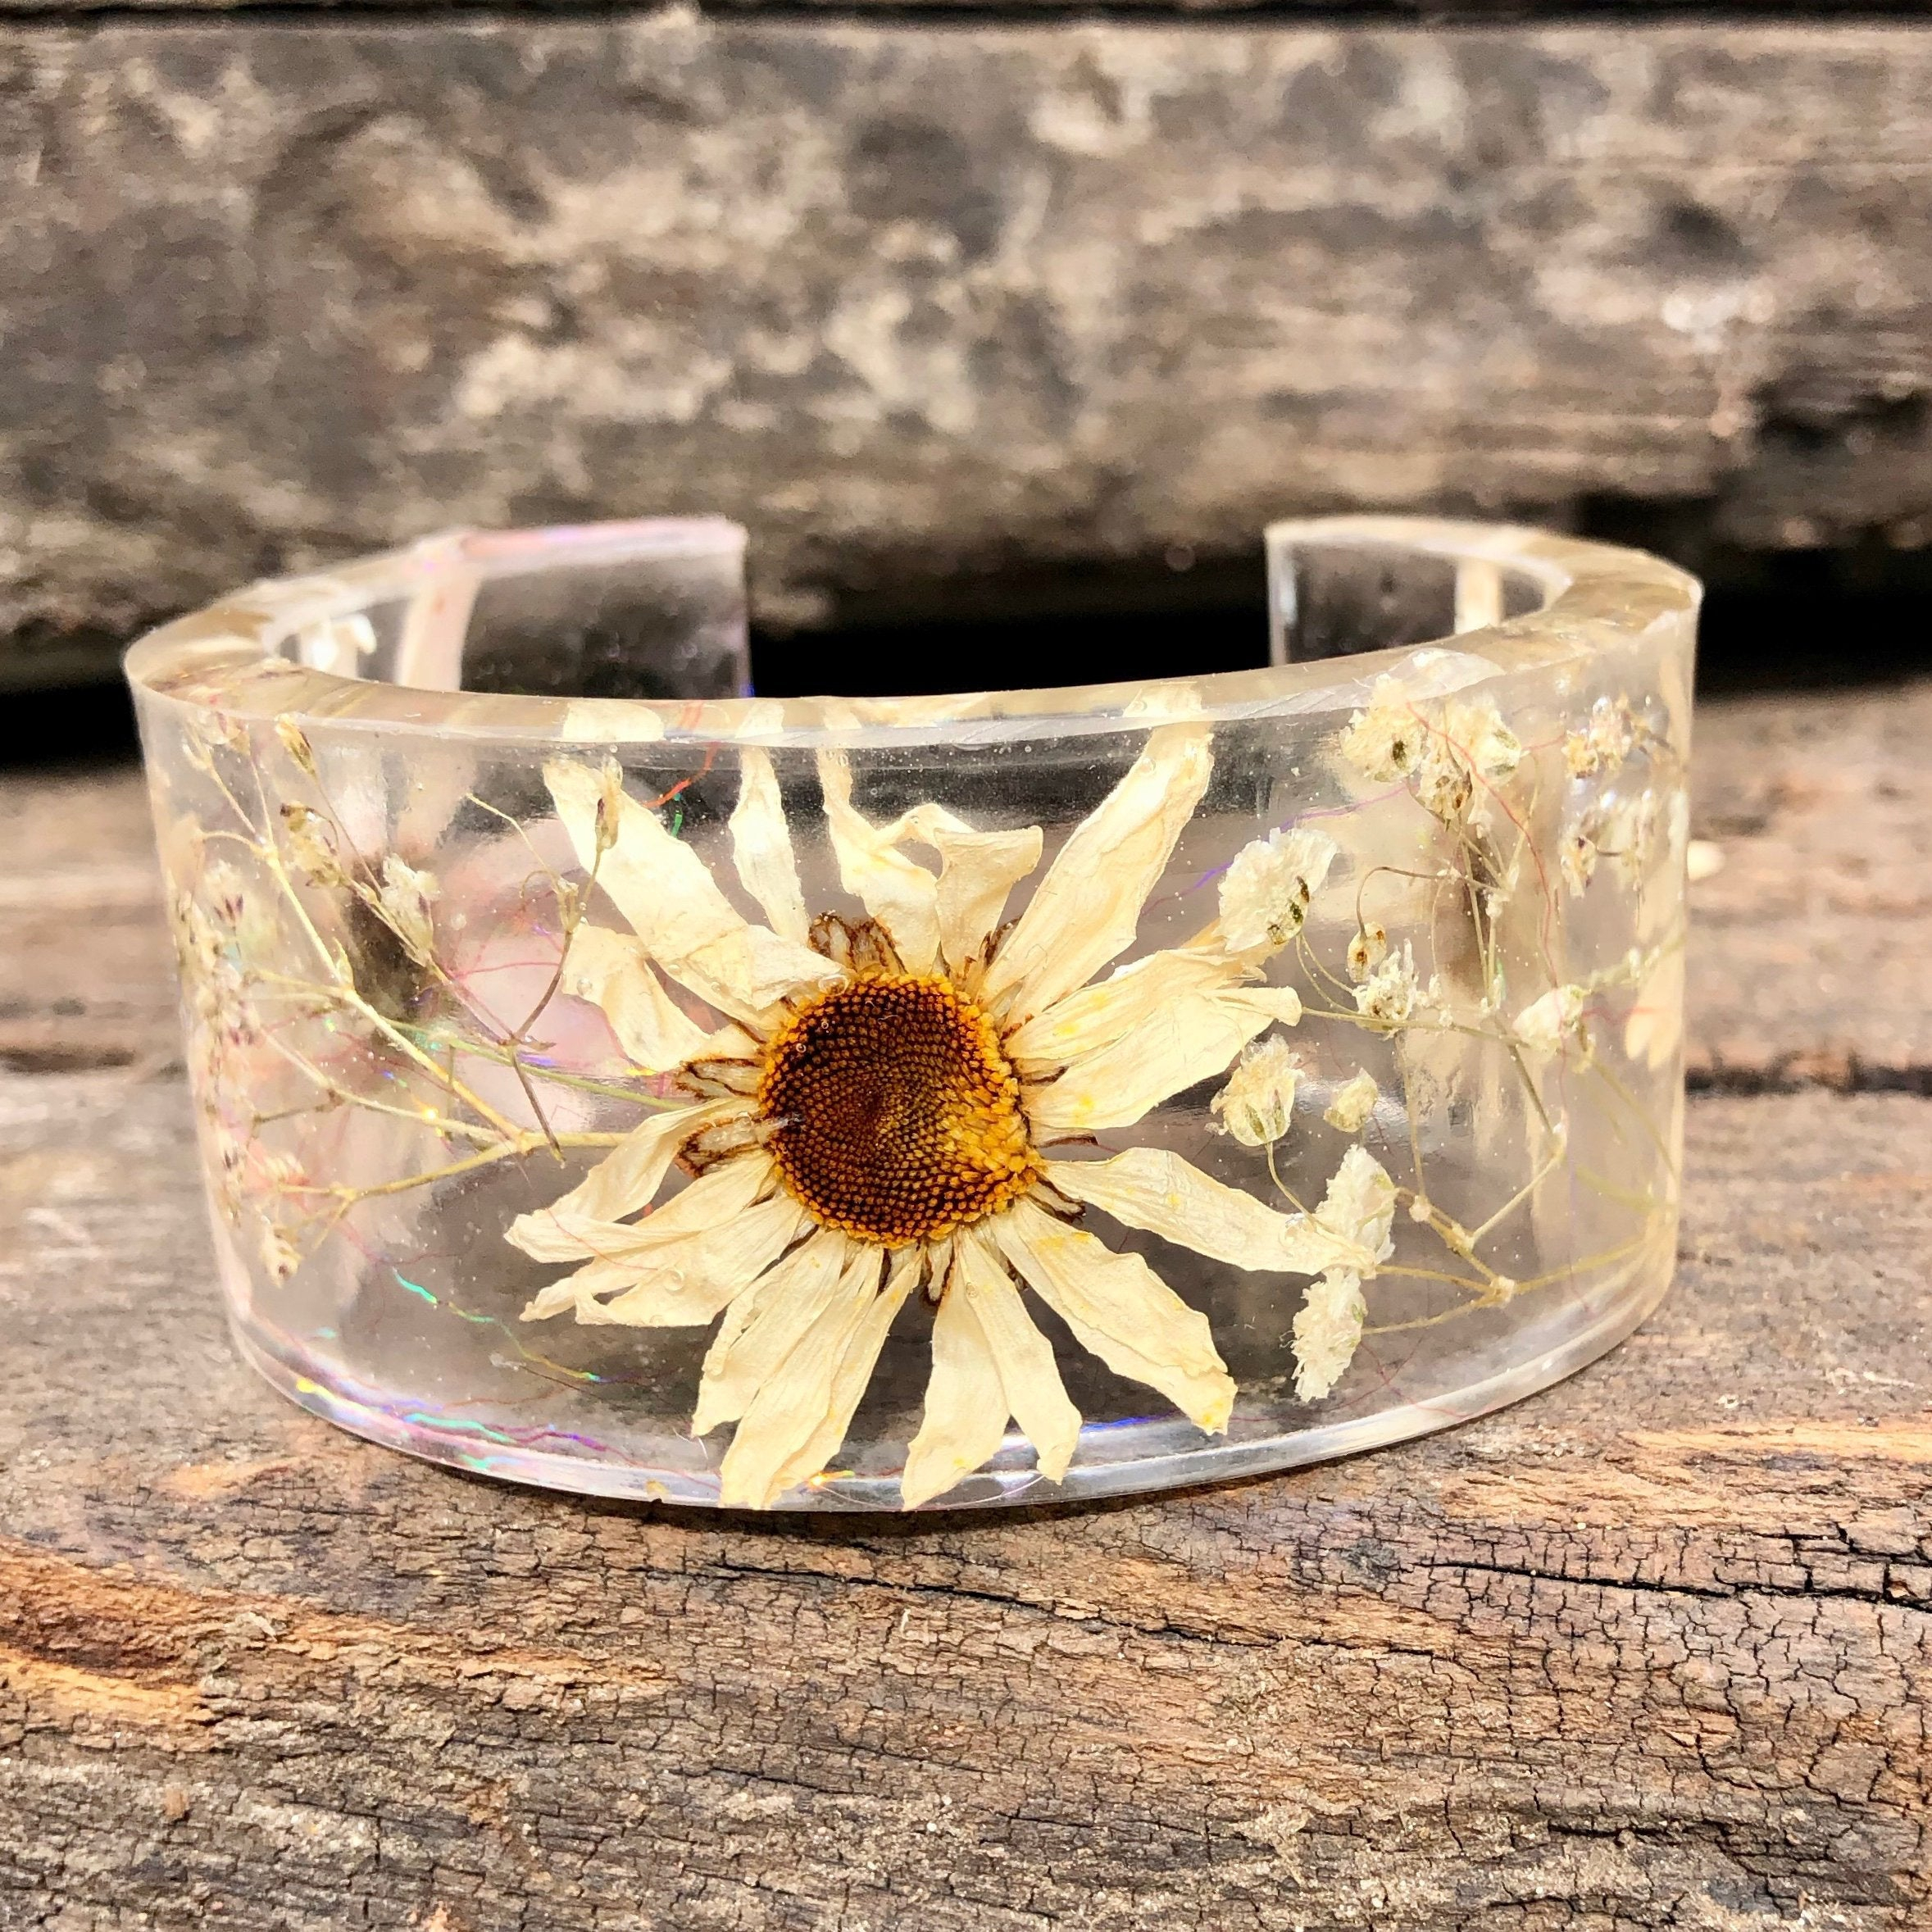 Daisy Cuff, Real Flower Cuff, Pressed Flower Cuff, Resin, Cuff, Medium, Daisies, Gypsophila, Baby's Breath, Wildflower Cuff, Resin Bangle With Regard To Current Sparkling Daisy Flower Rings (View 13 of 25)